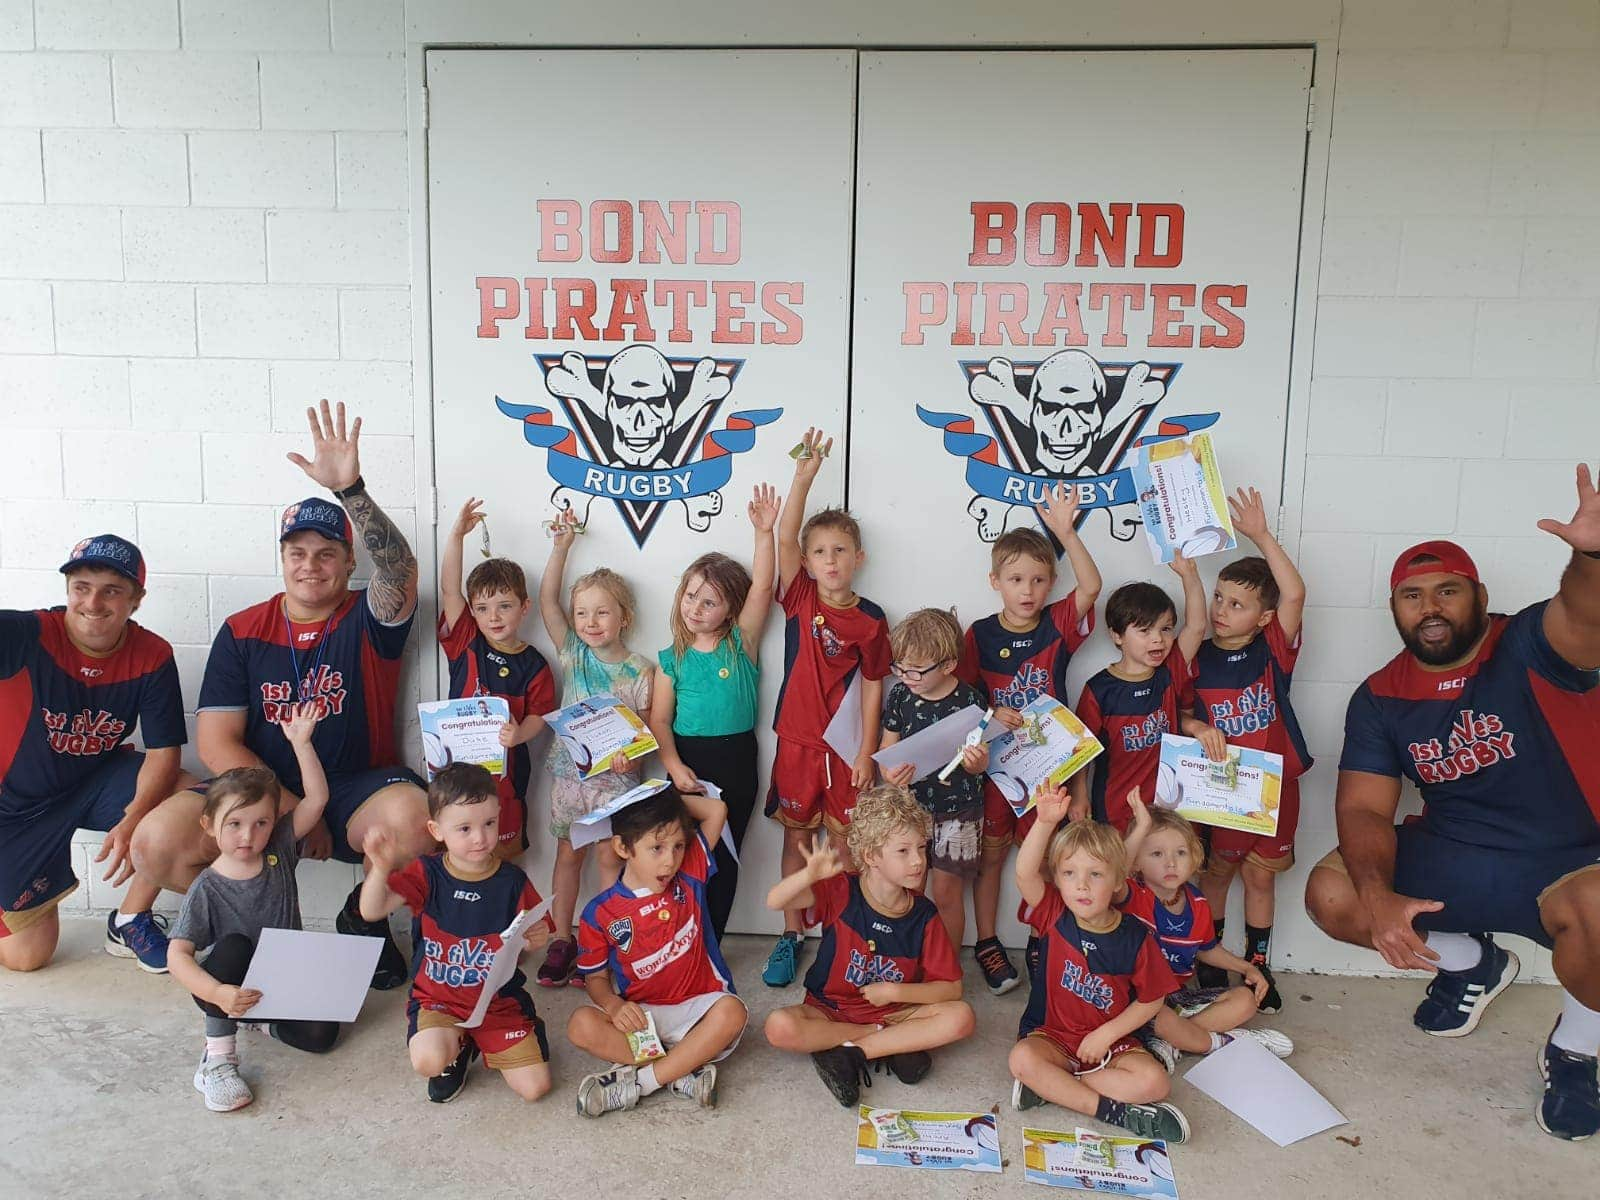 Rugby Programs for Bond Pirates